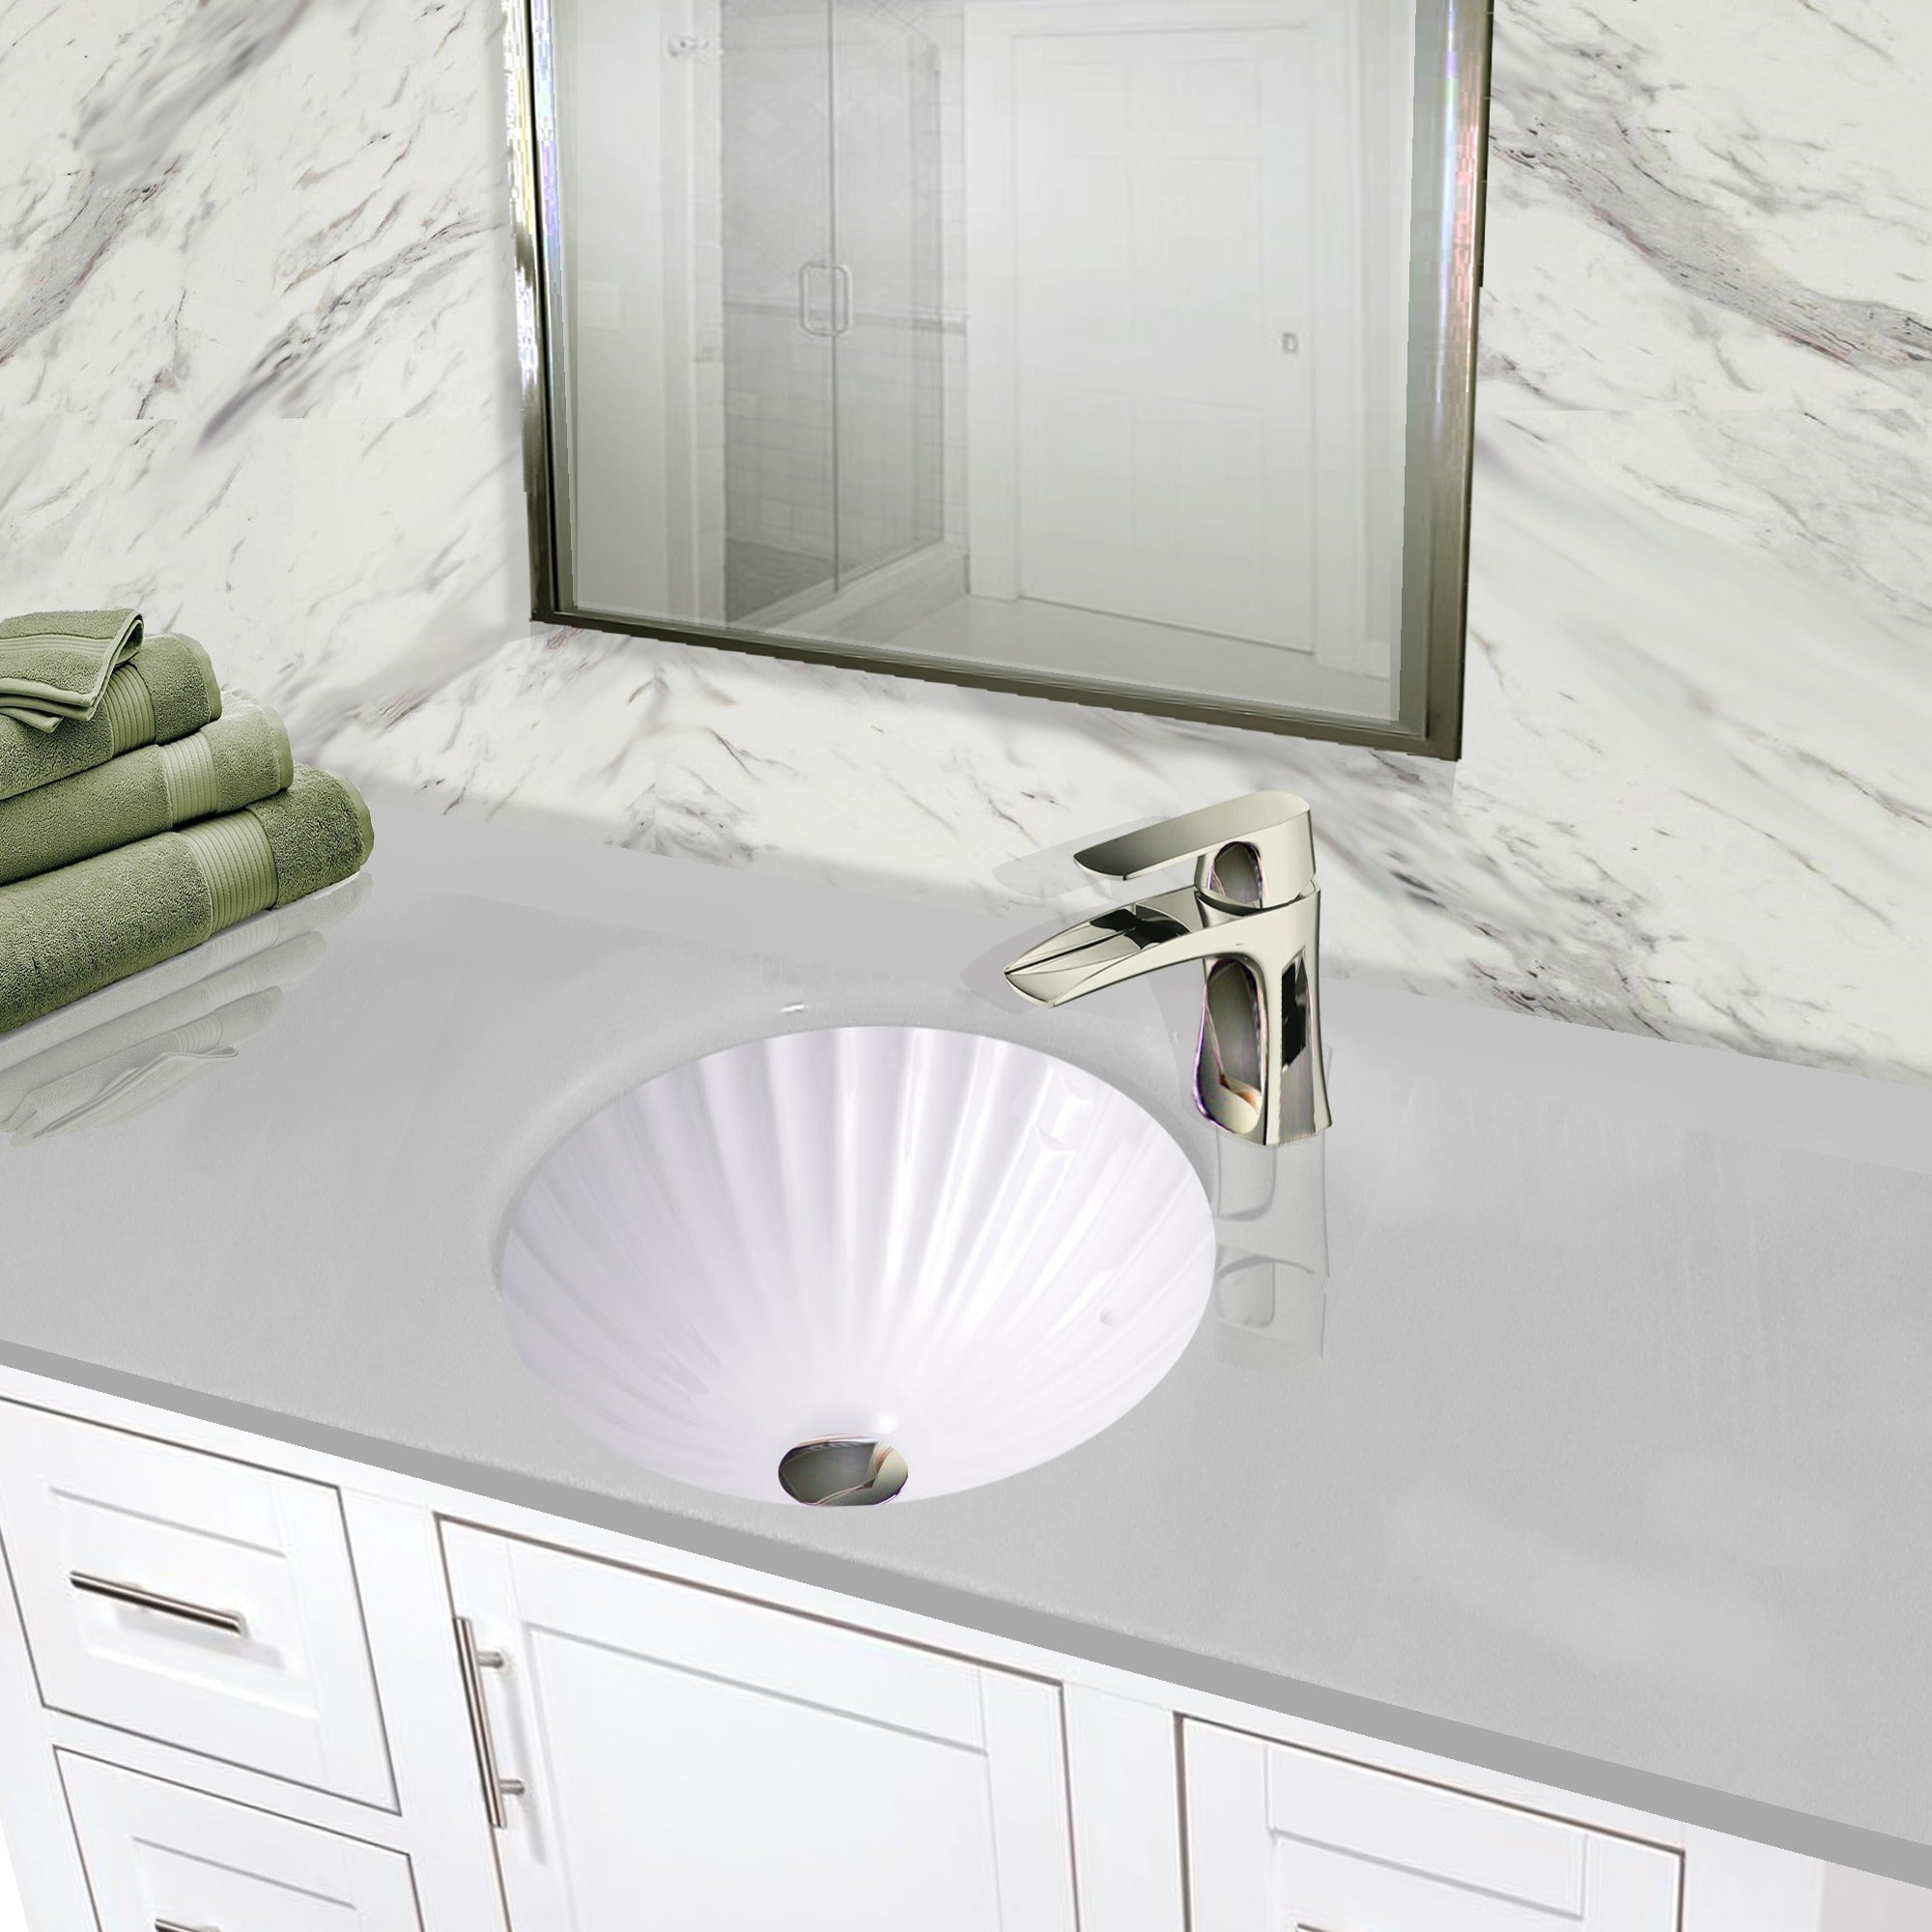 Exceptionnel Shop Highpoint Collection 12 Inch Round White Bathroom Vanity Undermount  Sink With Scalloped Basin   Free Shipping Today   Overstock.com   11017191